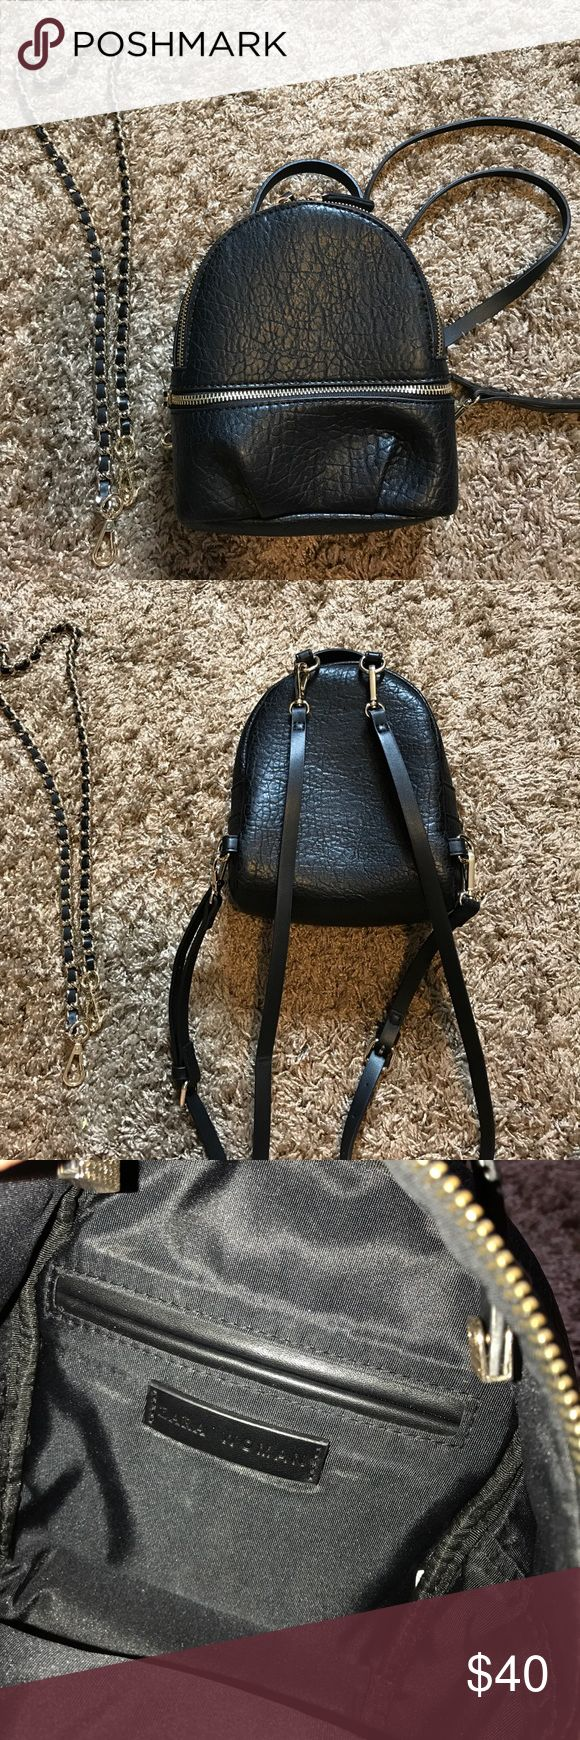 Zara Mini backpack in black faux pebbled leather Hi guys! I am selling a used Zara Mini Black backpack that a few vloggers were going after for. It is faux/fake pebbled leather. It can be worn as a shoulder bag and a mini backpack. I did buy it frm the Zara location in the Del Amo Mall. Light, normal wear on hardware, comes with the two backpack black removal straps and the the heavy gold& black chain as well. All are original and authentic. If you hace any qs or need more pics pls ask! Zara…